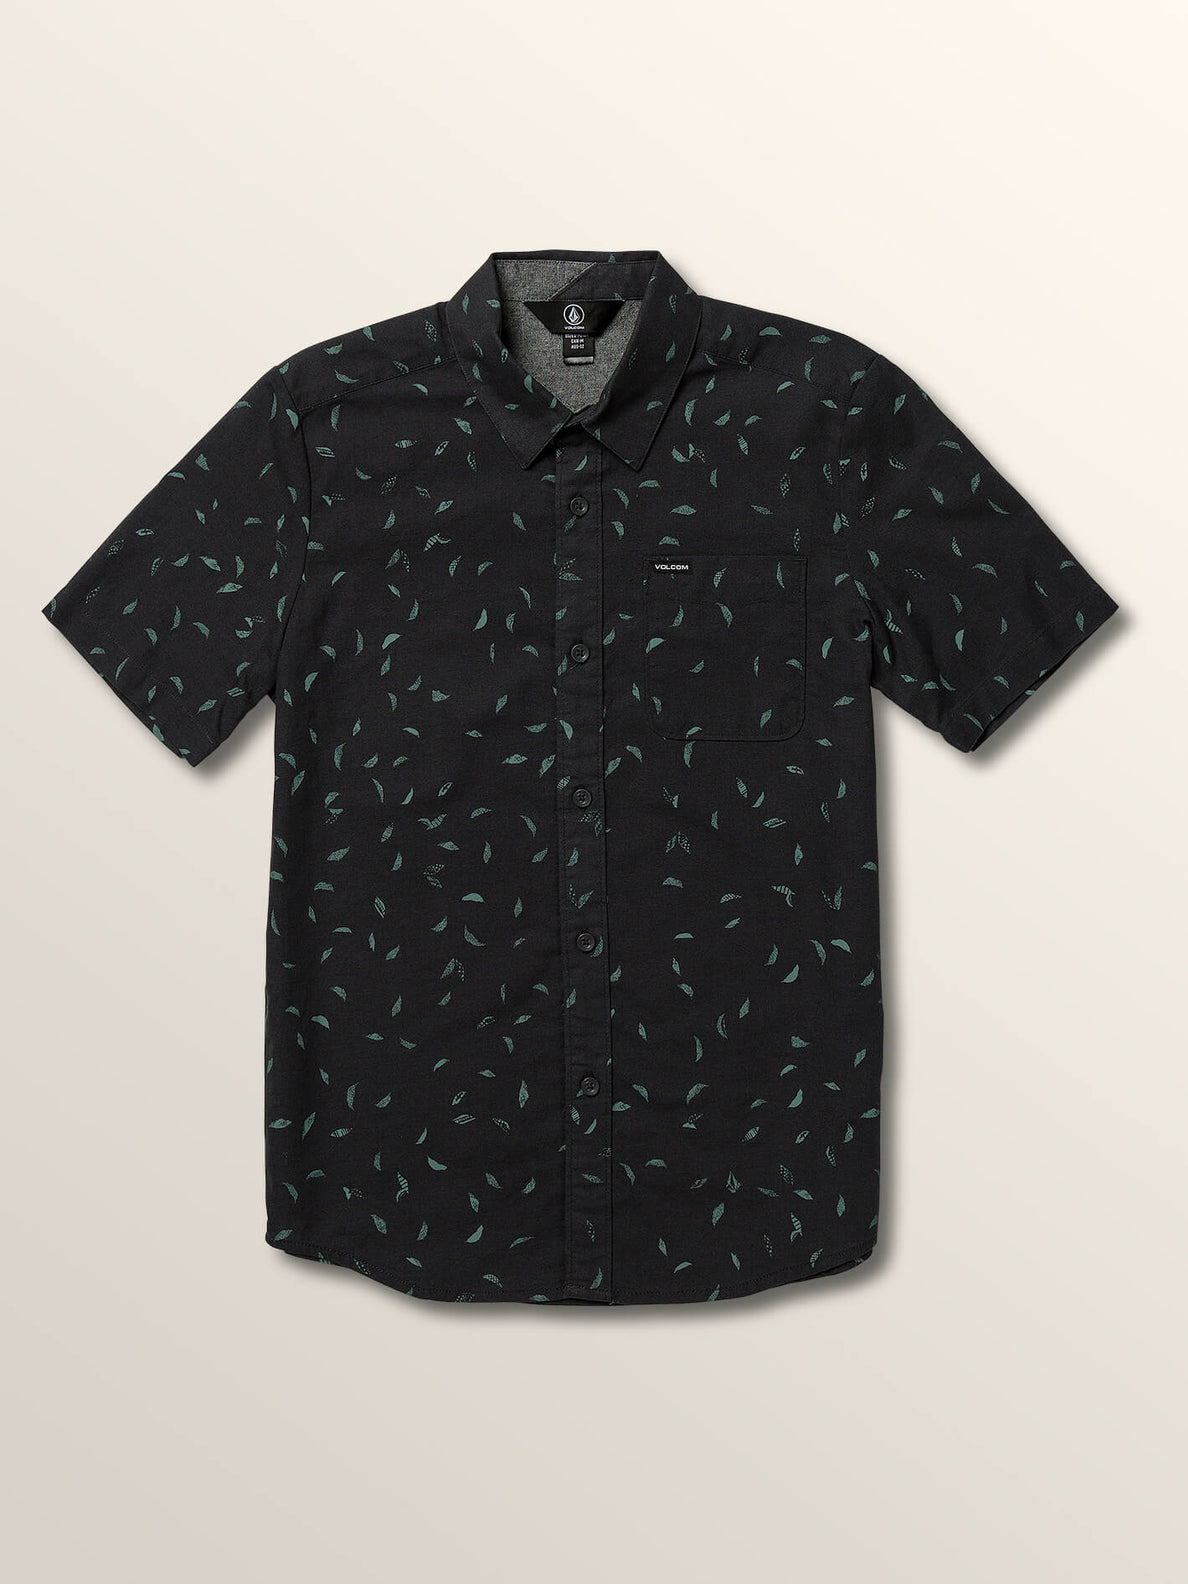 Big Boys Quency Dot Short Sleeve Shirt In Asphalt Black, Front View